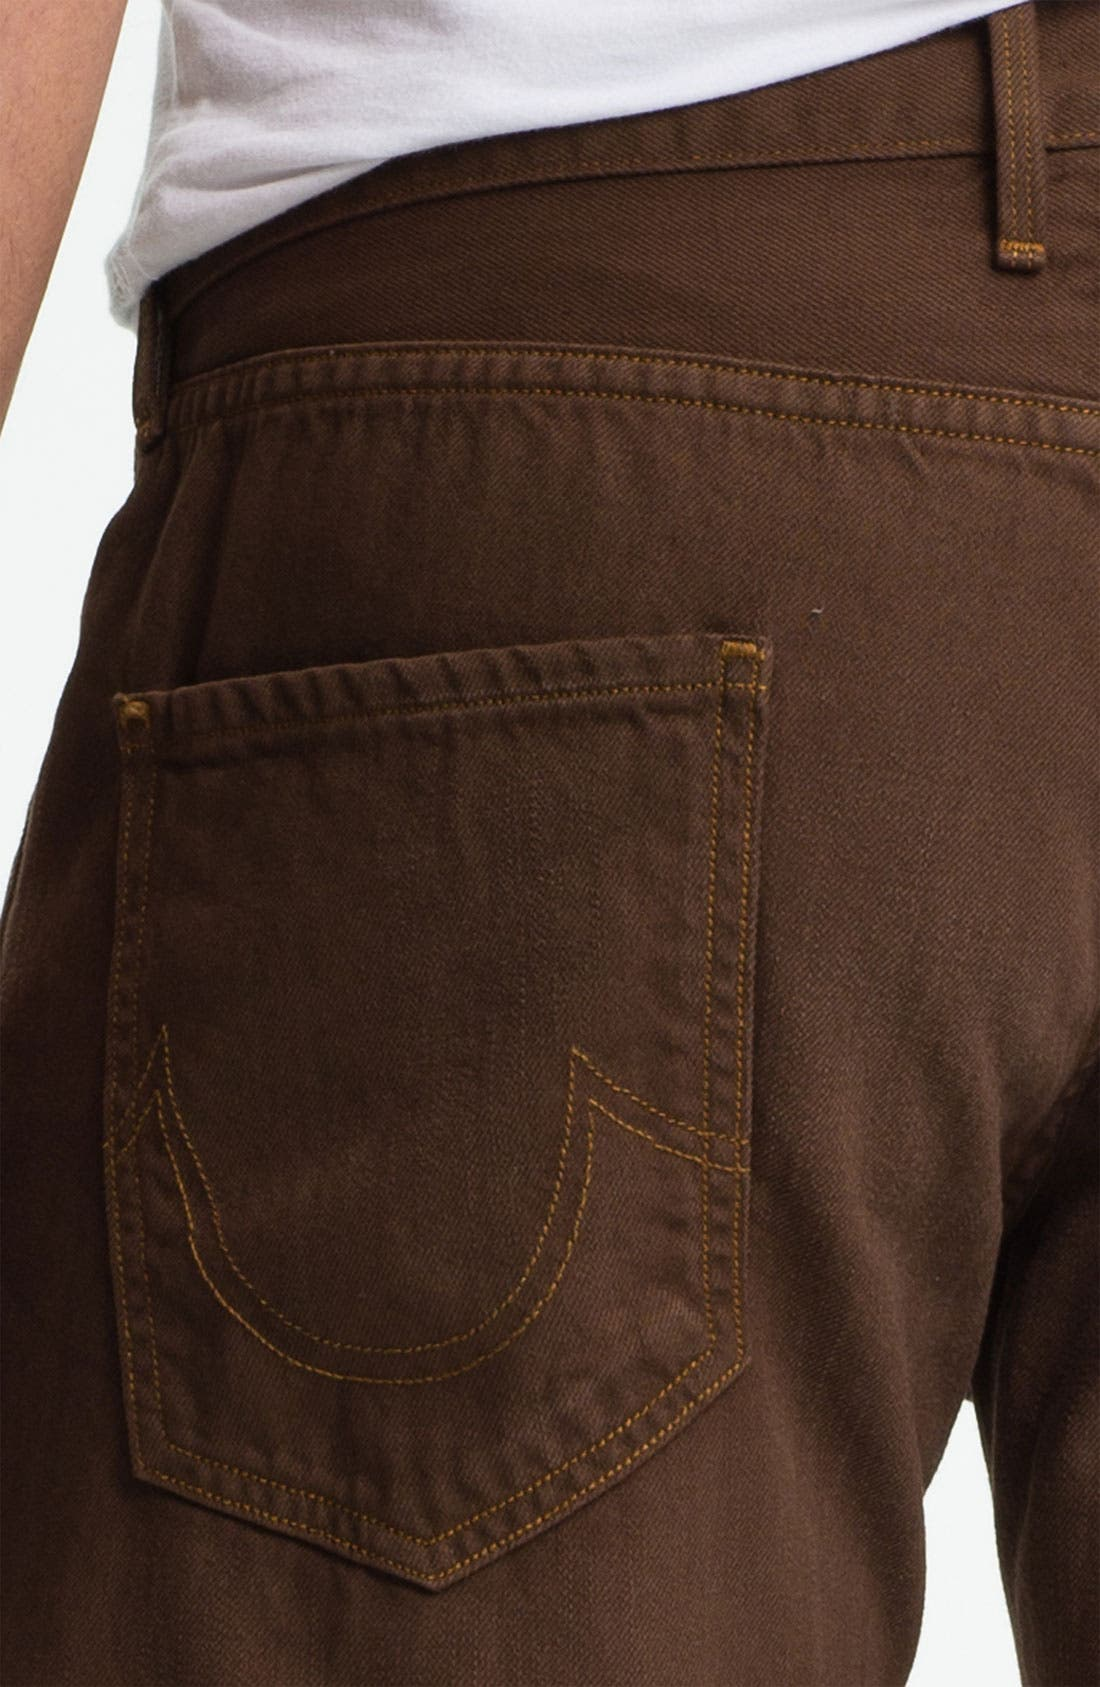 Alternate Image 4  - True Religion Brand Jeans 'Geno Blue Collar Crossroads' Slim Straight Leg Jeans (Kona Brown)